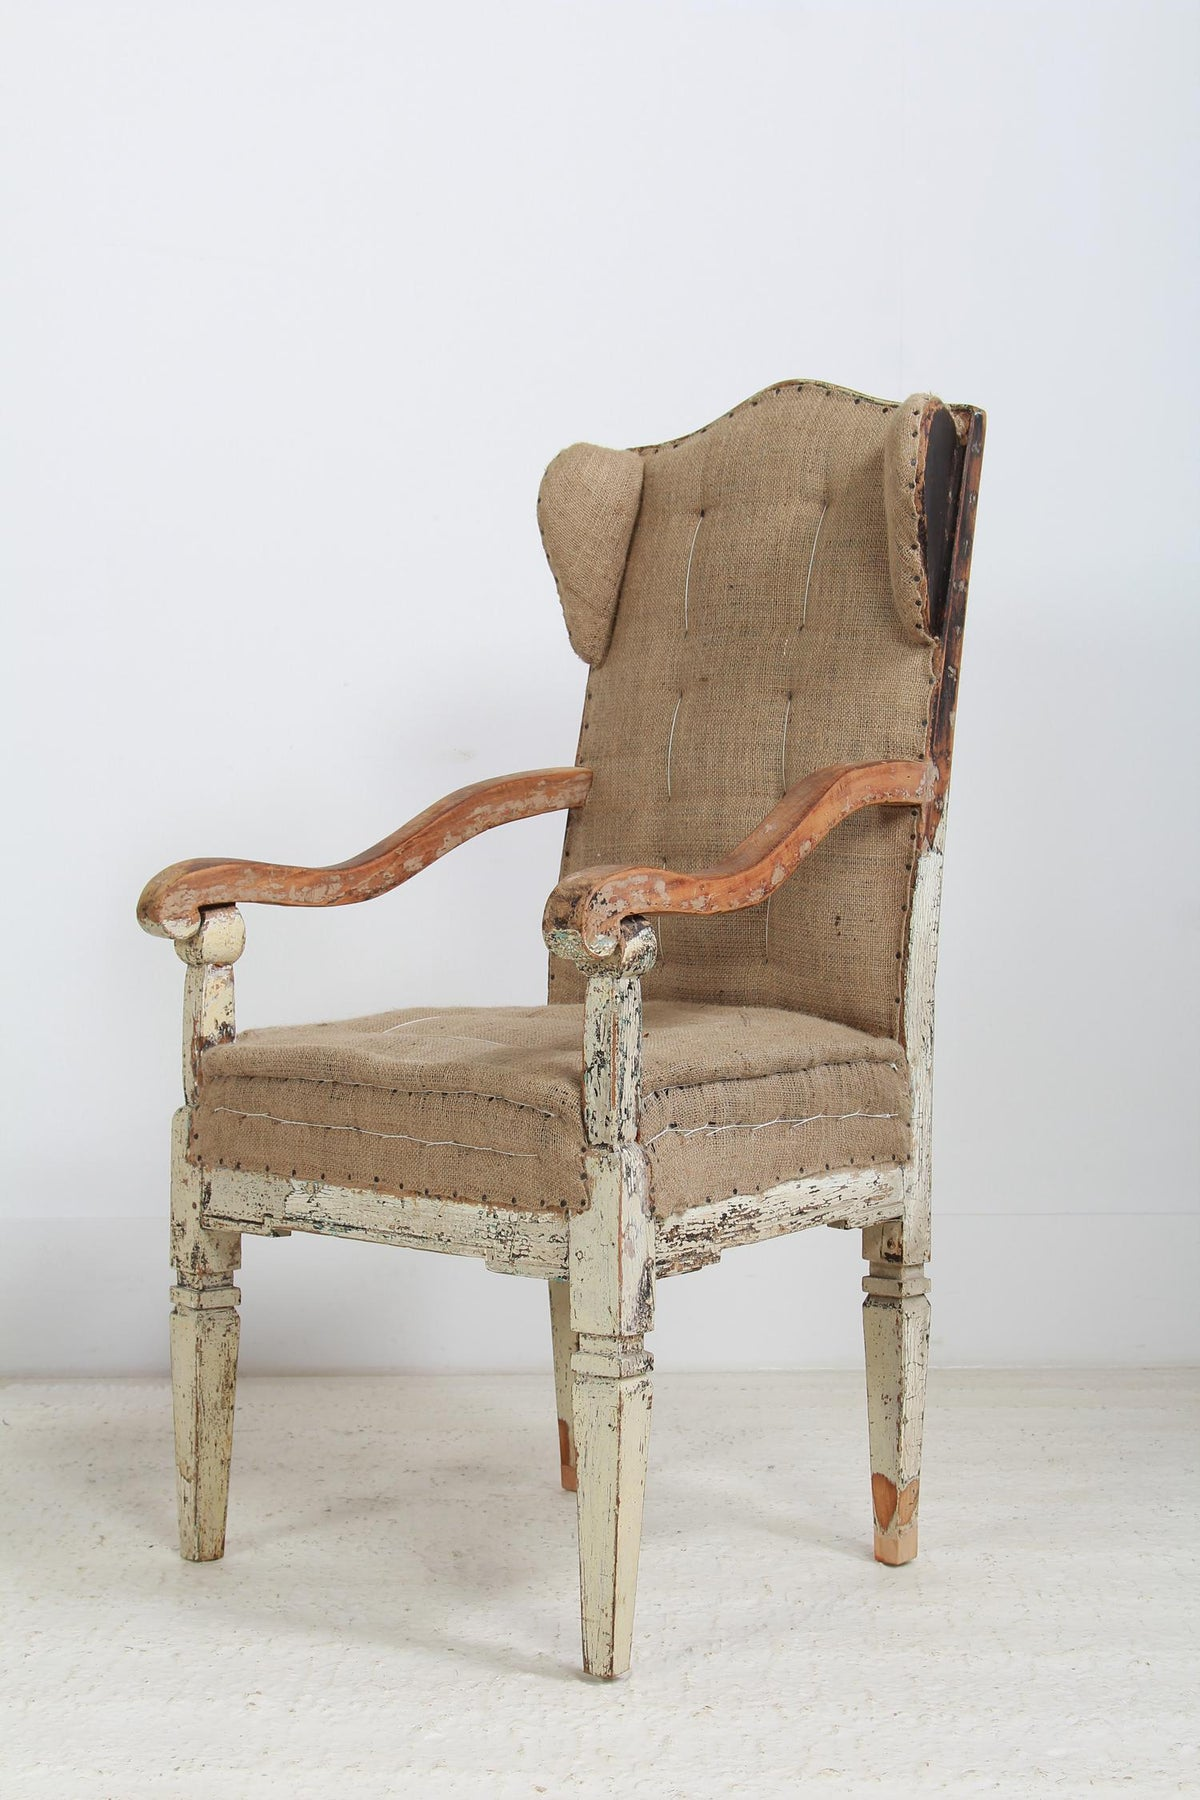 Late 18thC French Period Deconstructed Winged Armchair